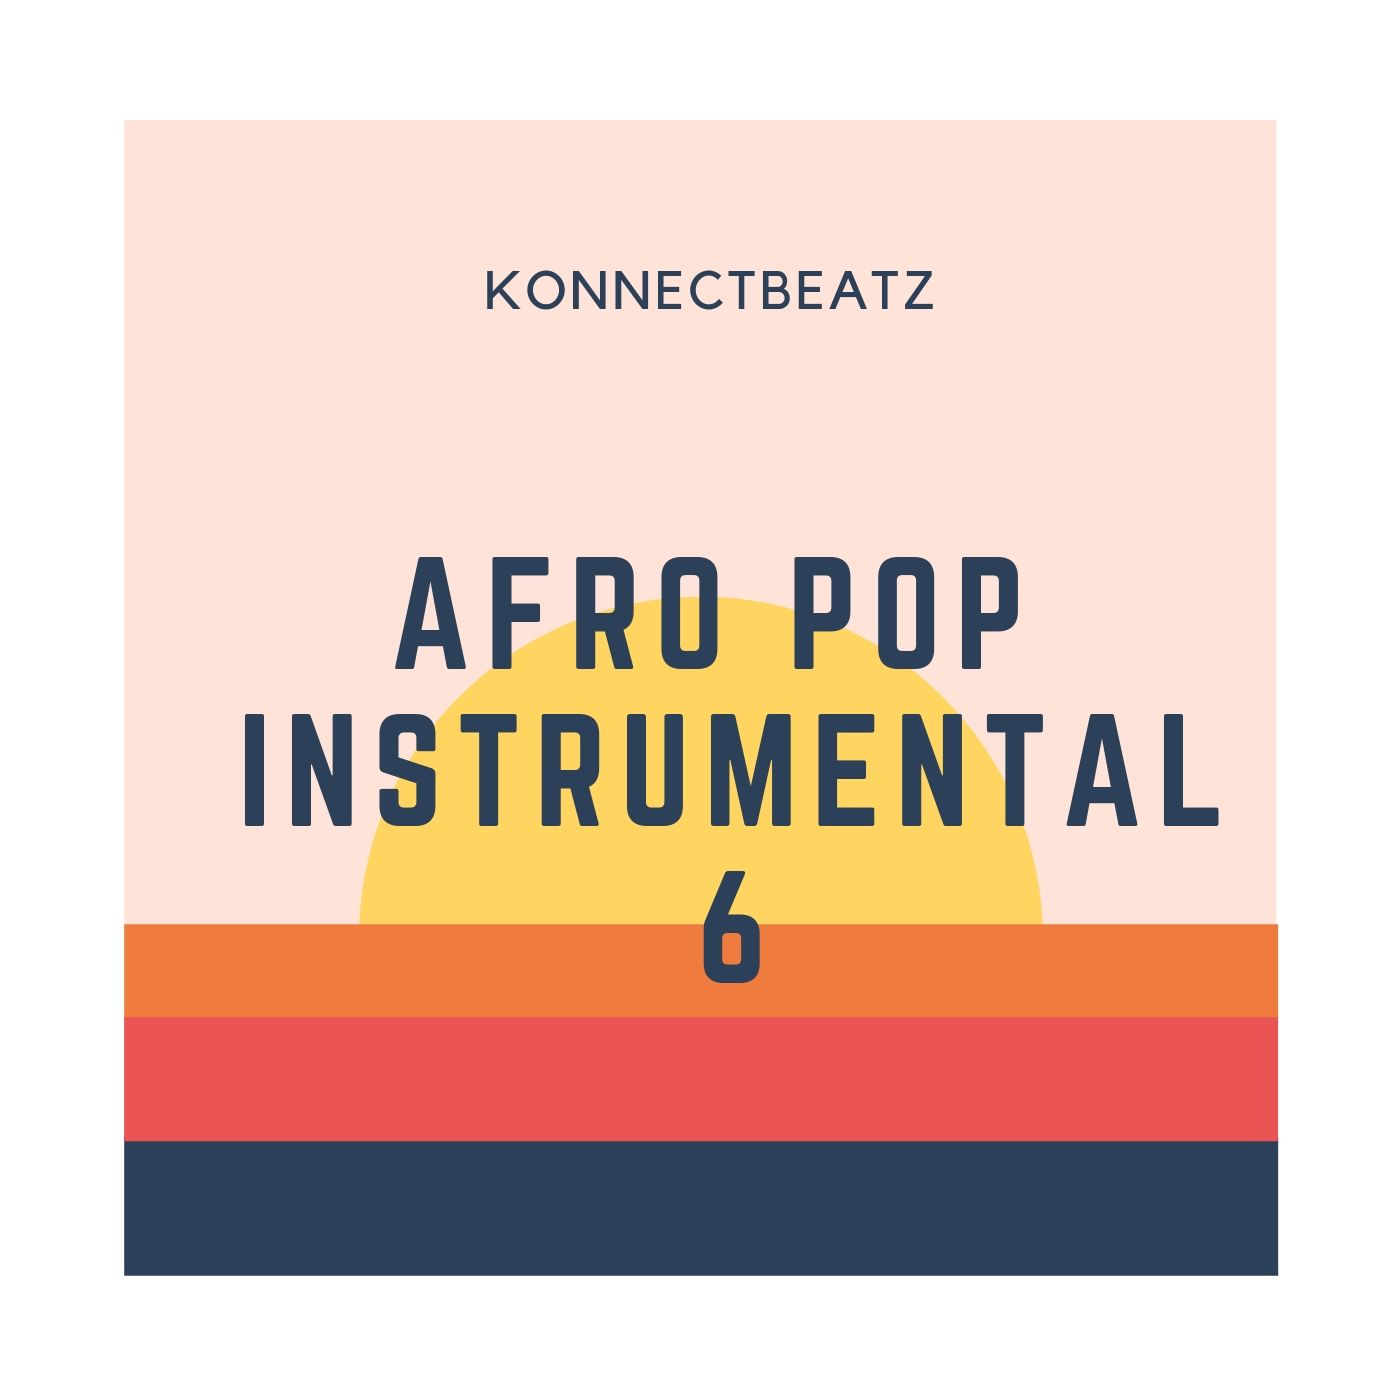 KonnectBeatz – Afro Pop Instrumental 6